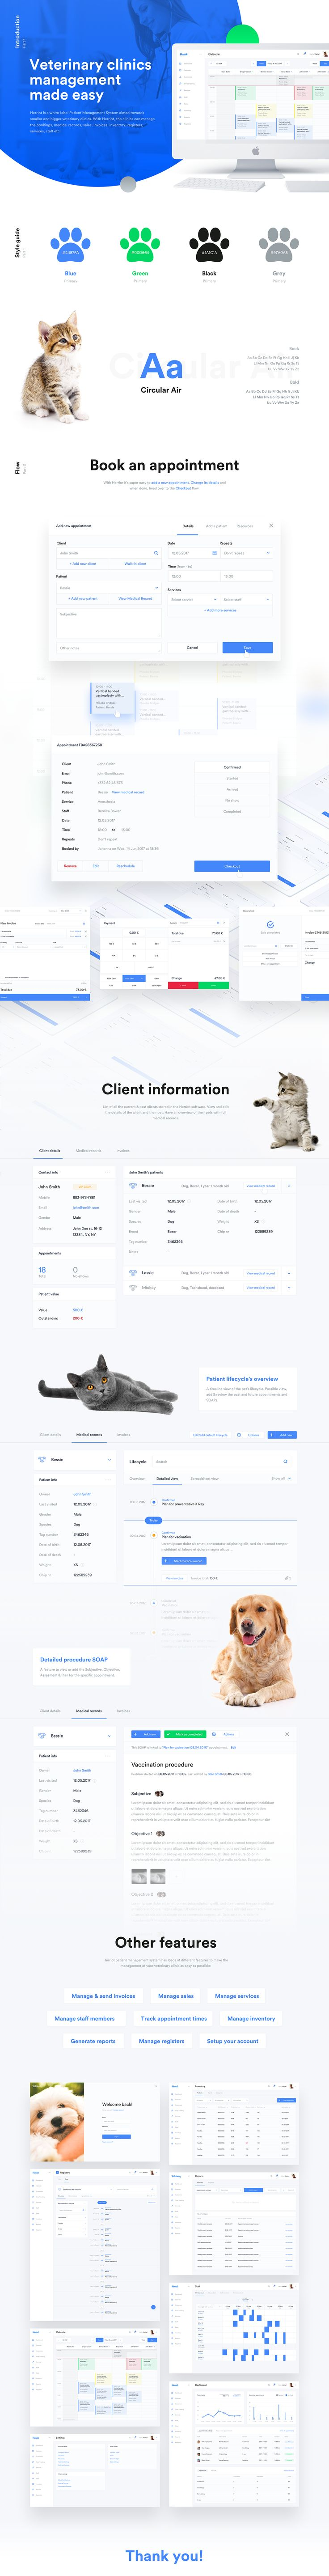 UI/UX design for veterinary practice management software